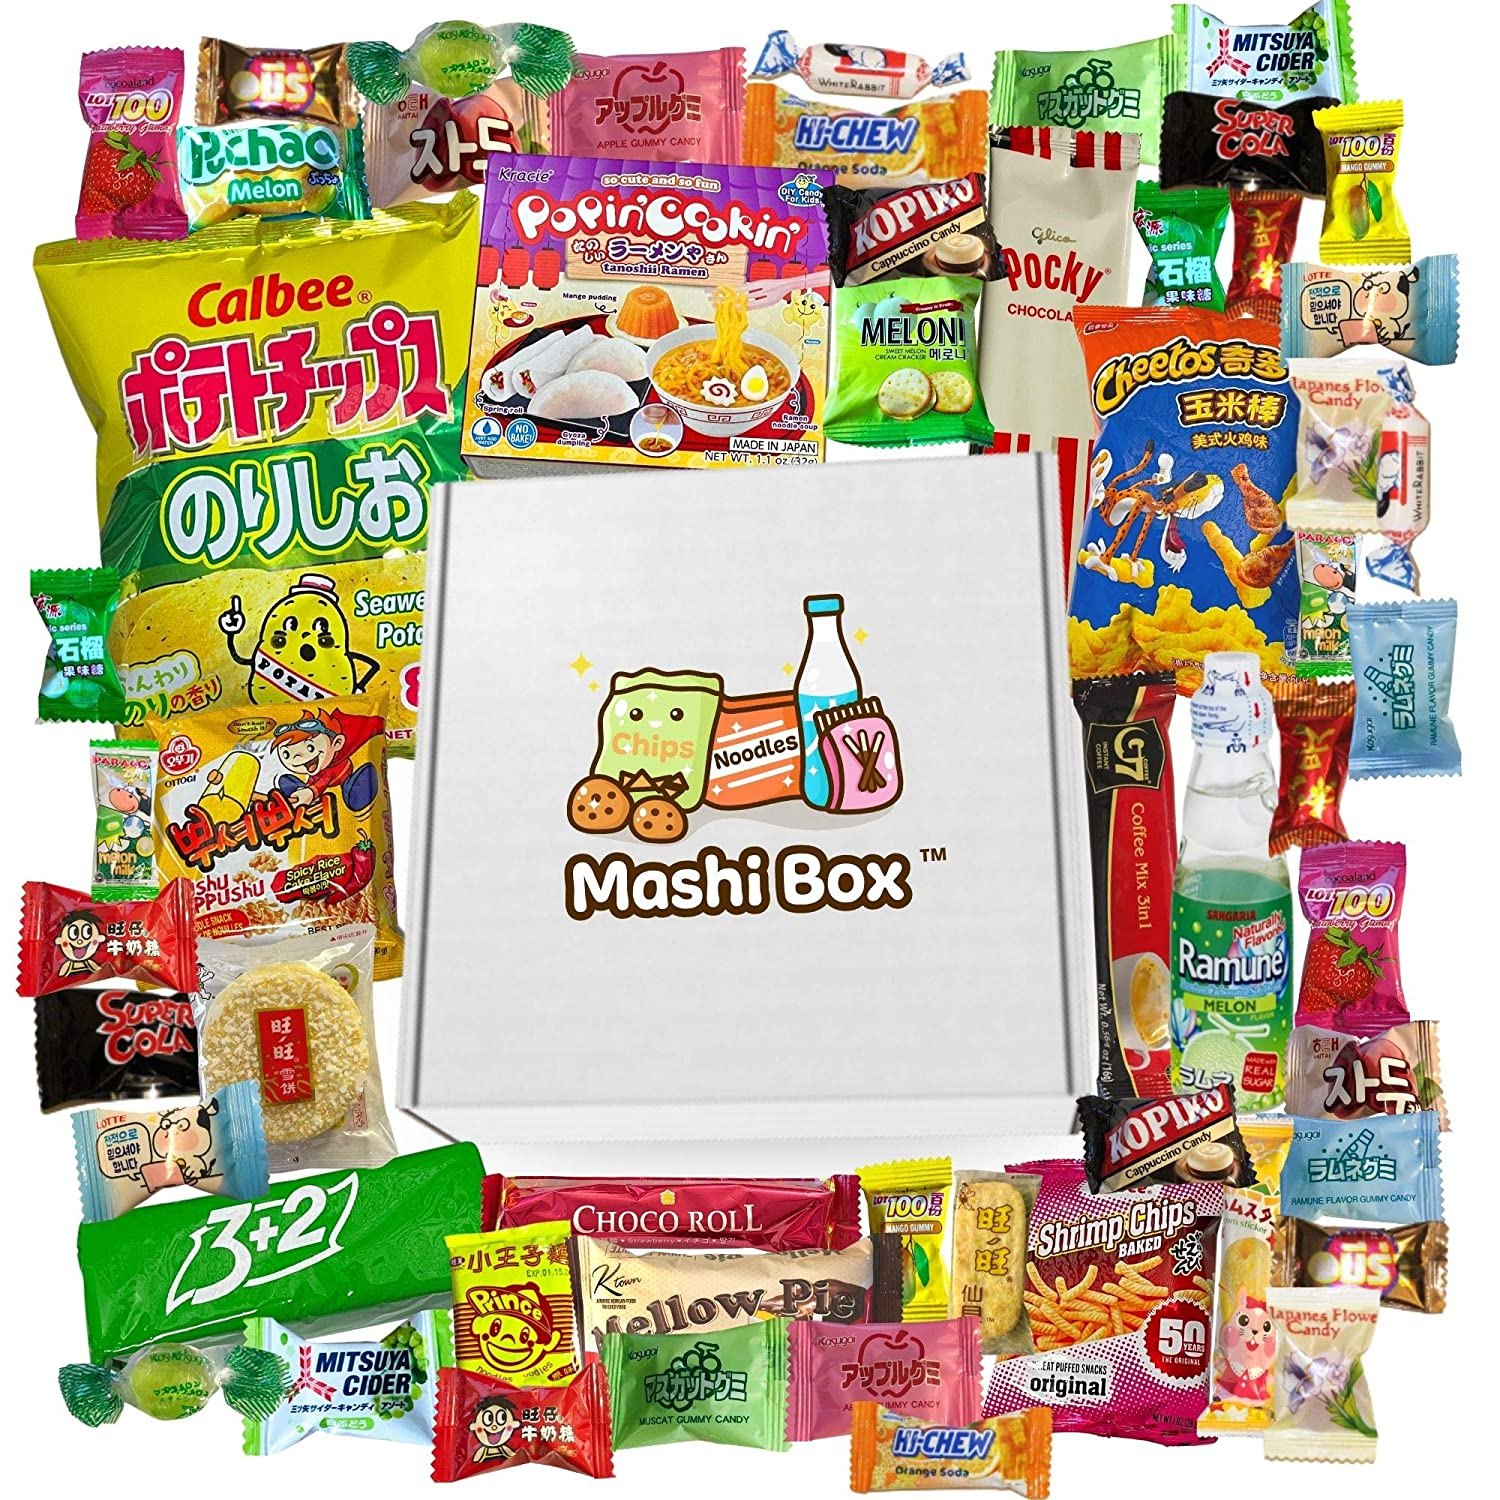 Mashi Box Deluxe Asian Dagashi Snack Box - 55 Pieces - 6 FULL SIZED ITEMS, Comes with Ramune Drink, Asian Noodles, Asian Chips, Asian Candy